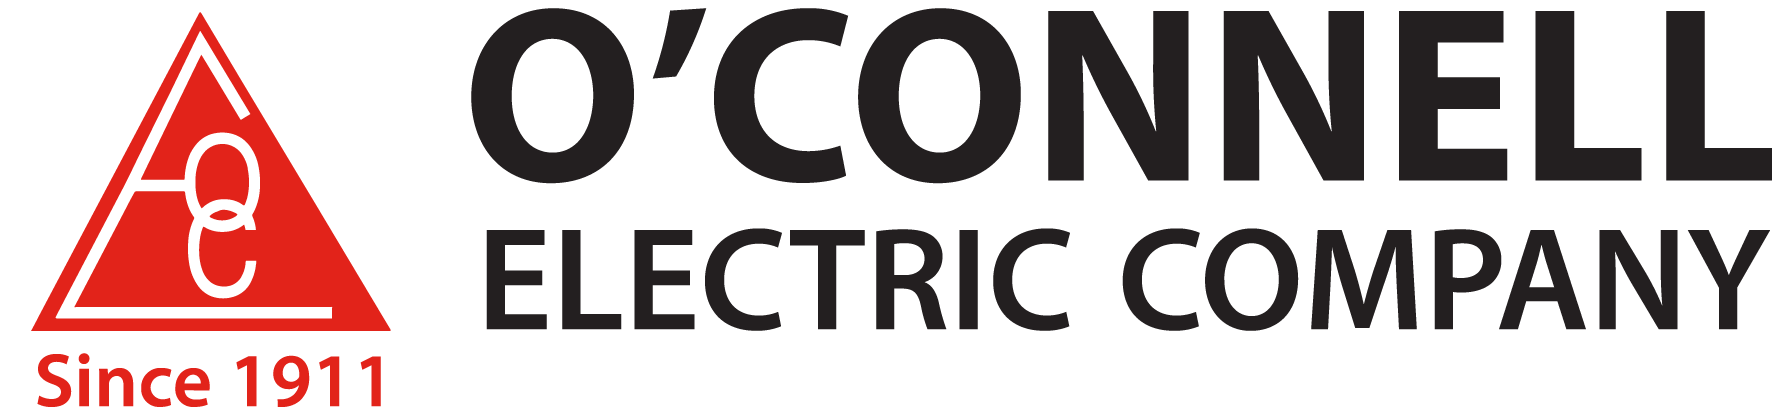 O'Connell Electric' Logo's logo